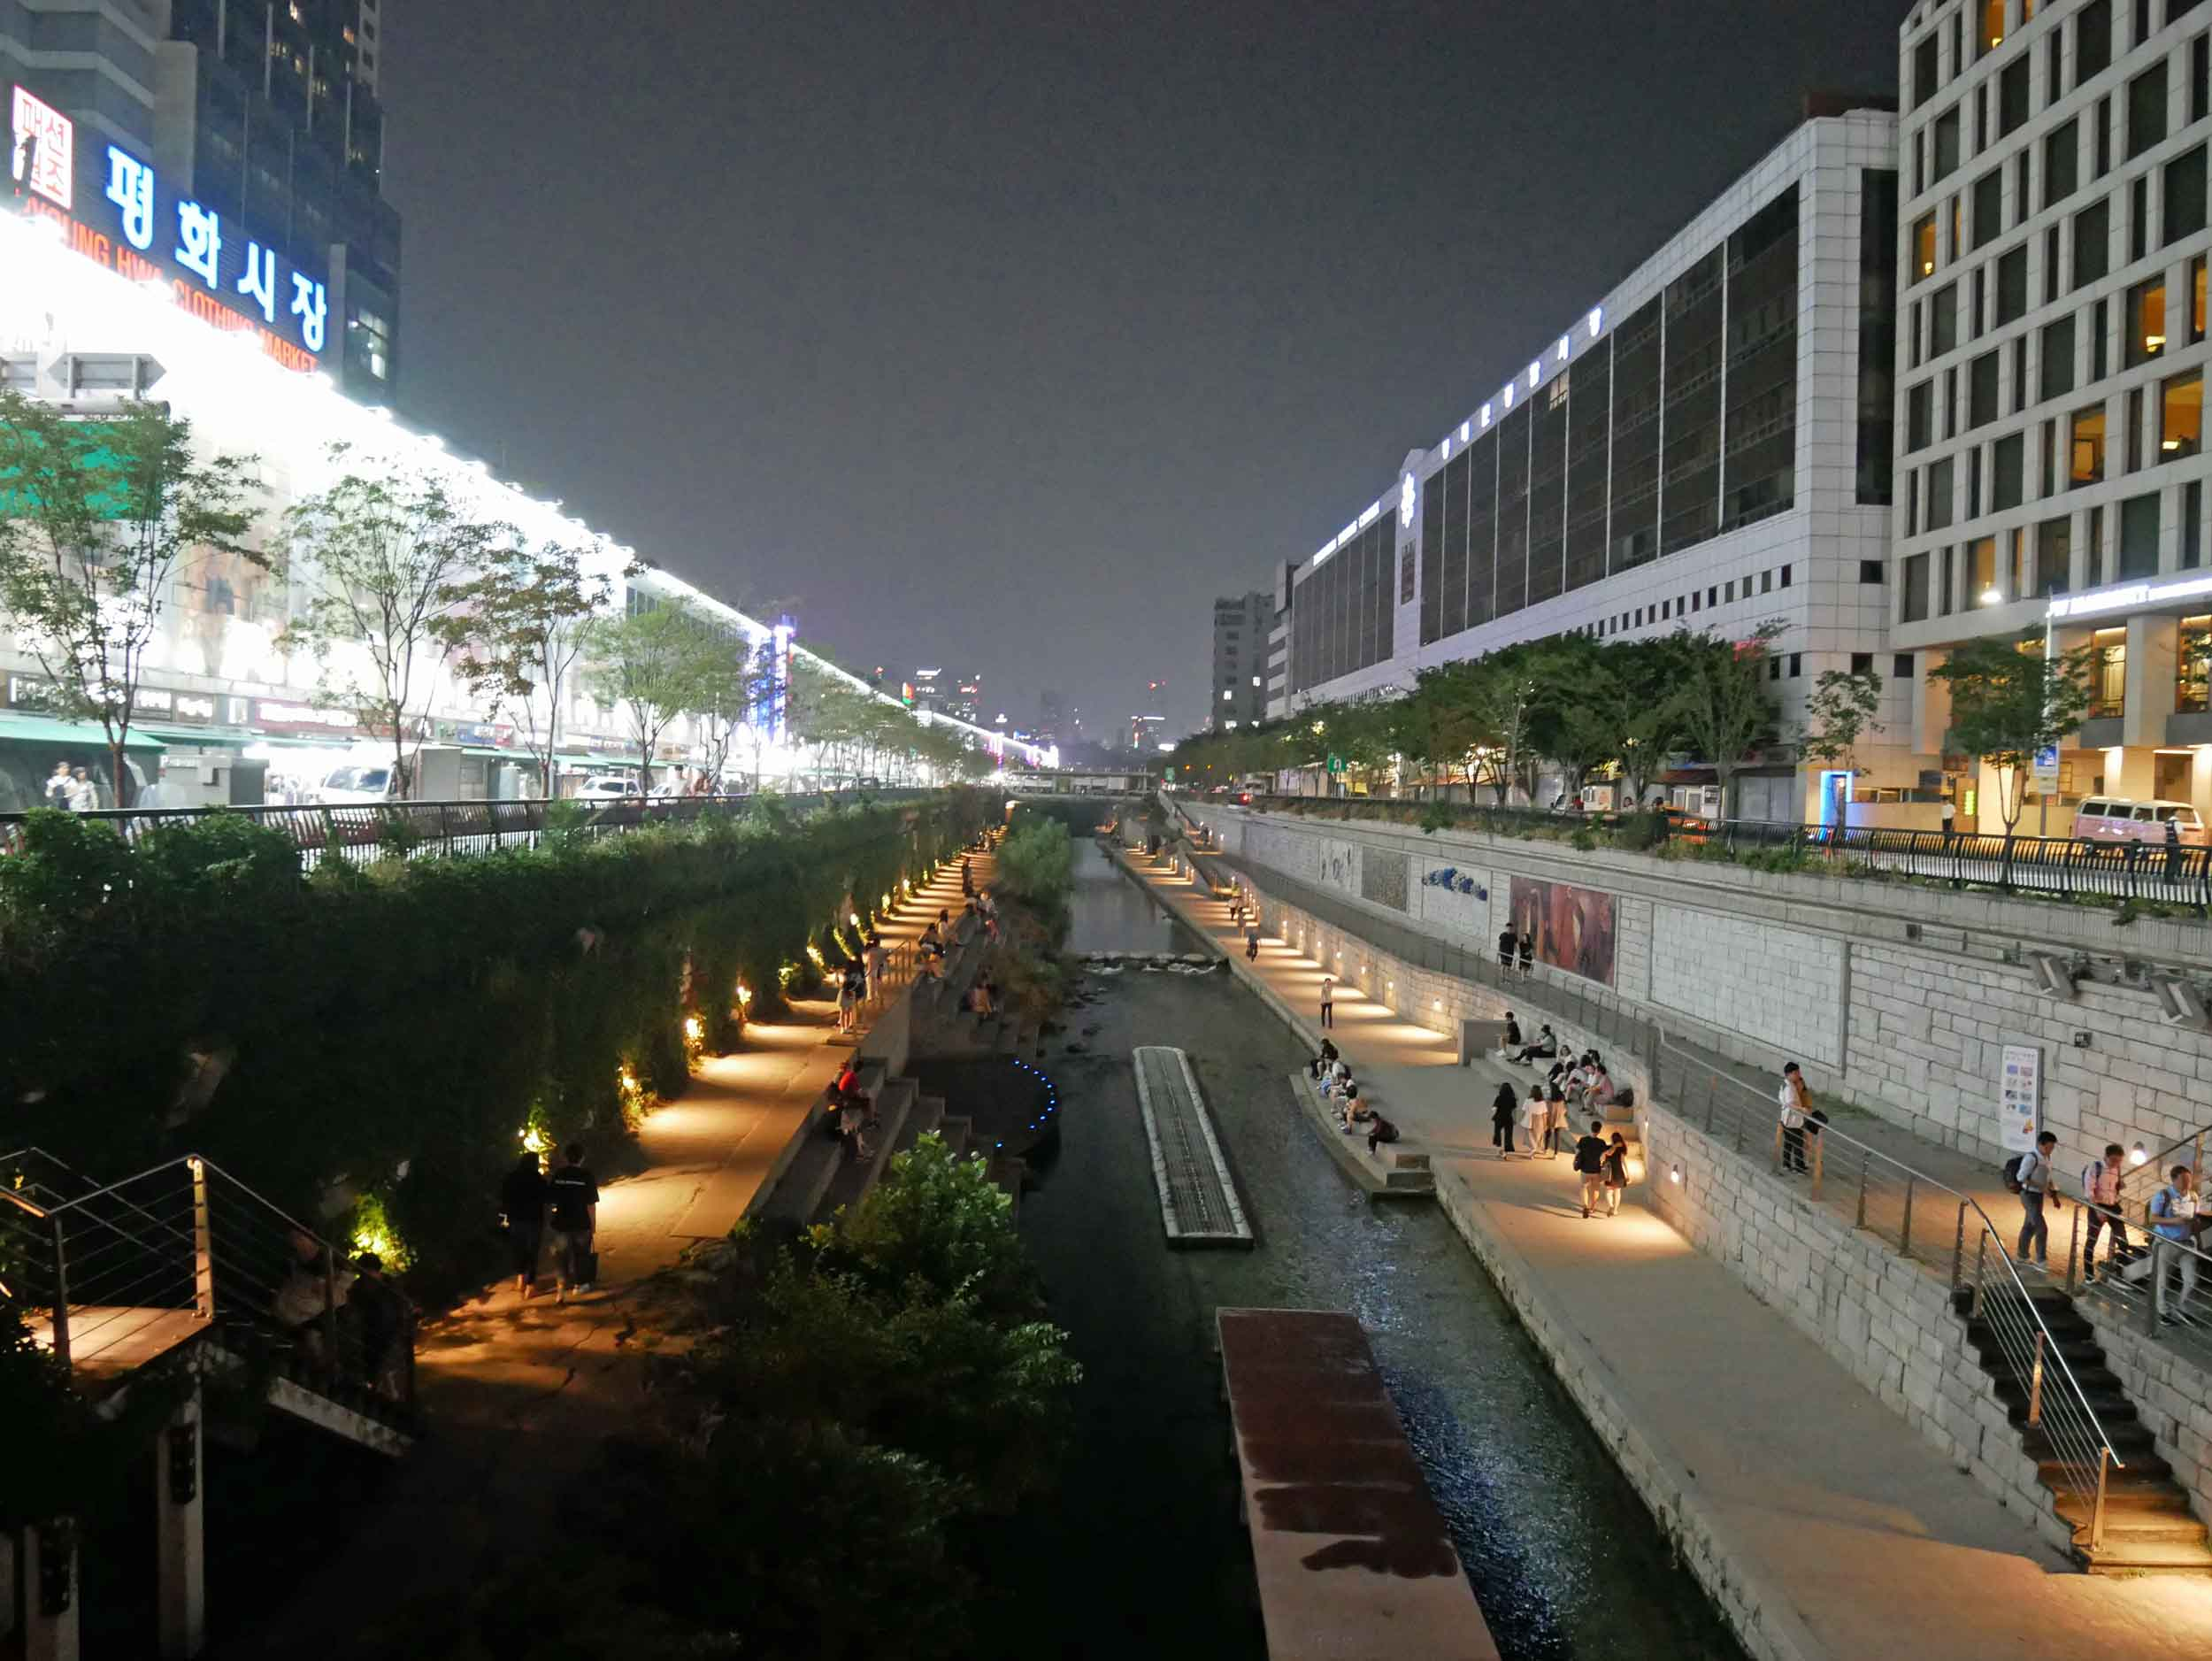 The lovely night attracted other strollers and love birds along the pretty canal that winds through Dongdaemun district.